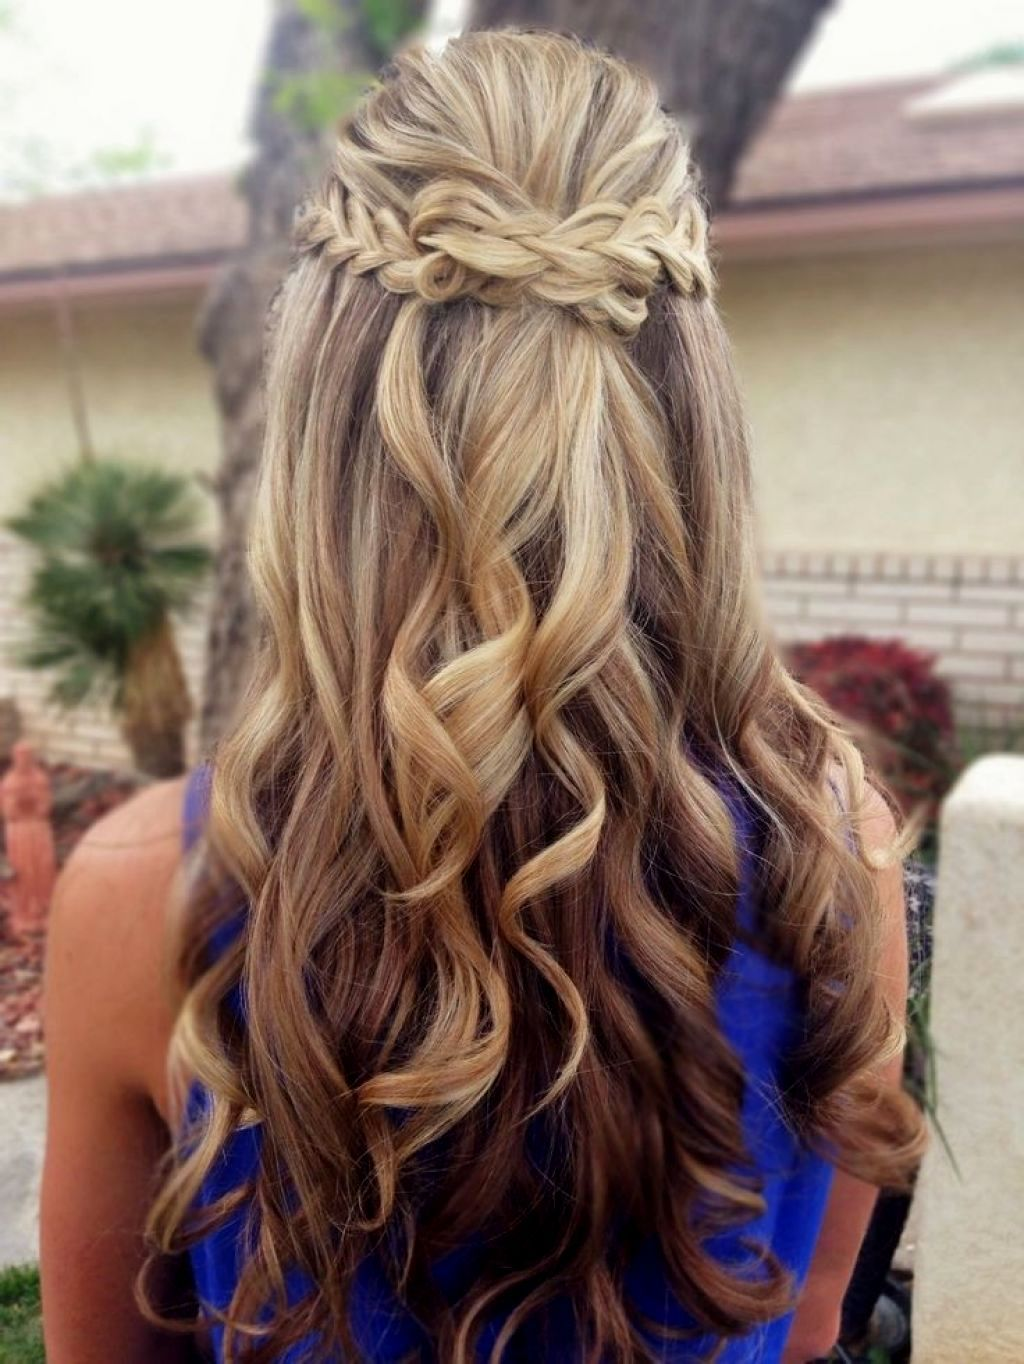 prom-hairstyles-for-medium-hair-half-up-half-down-prom-hairdos-for